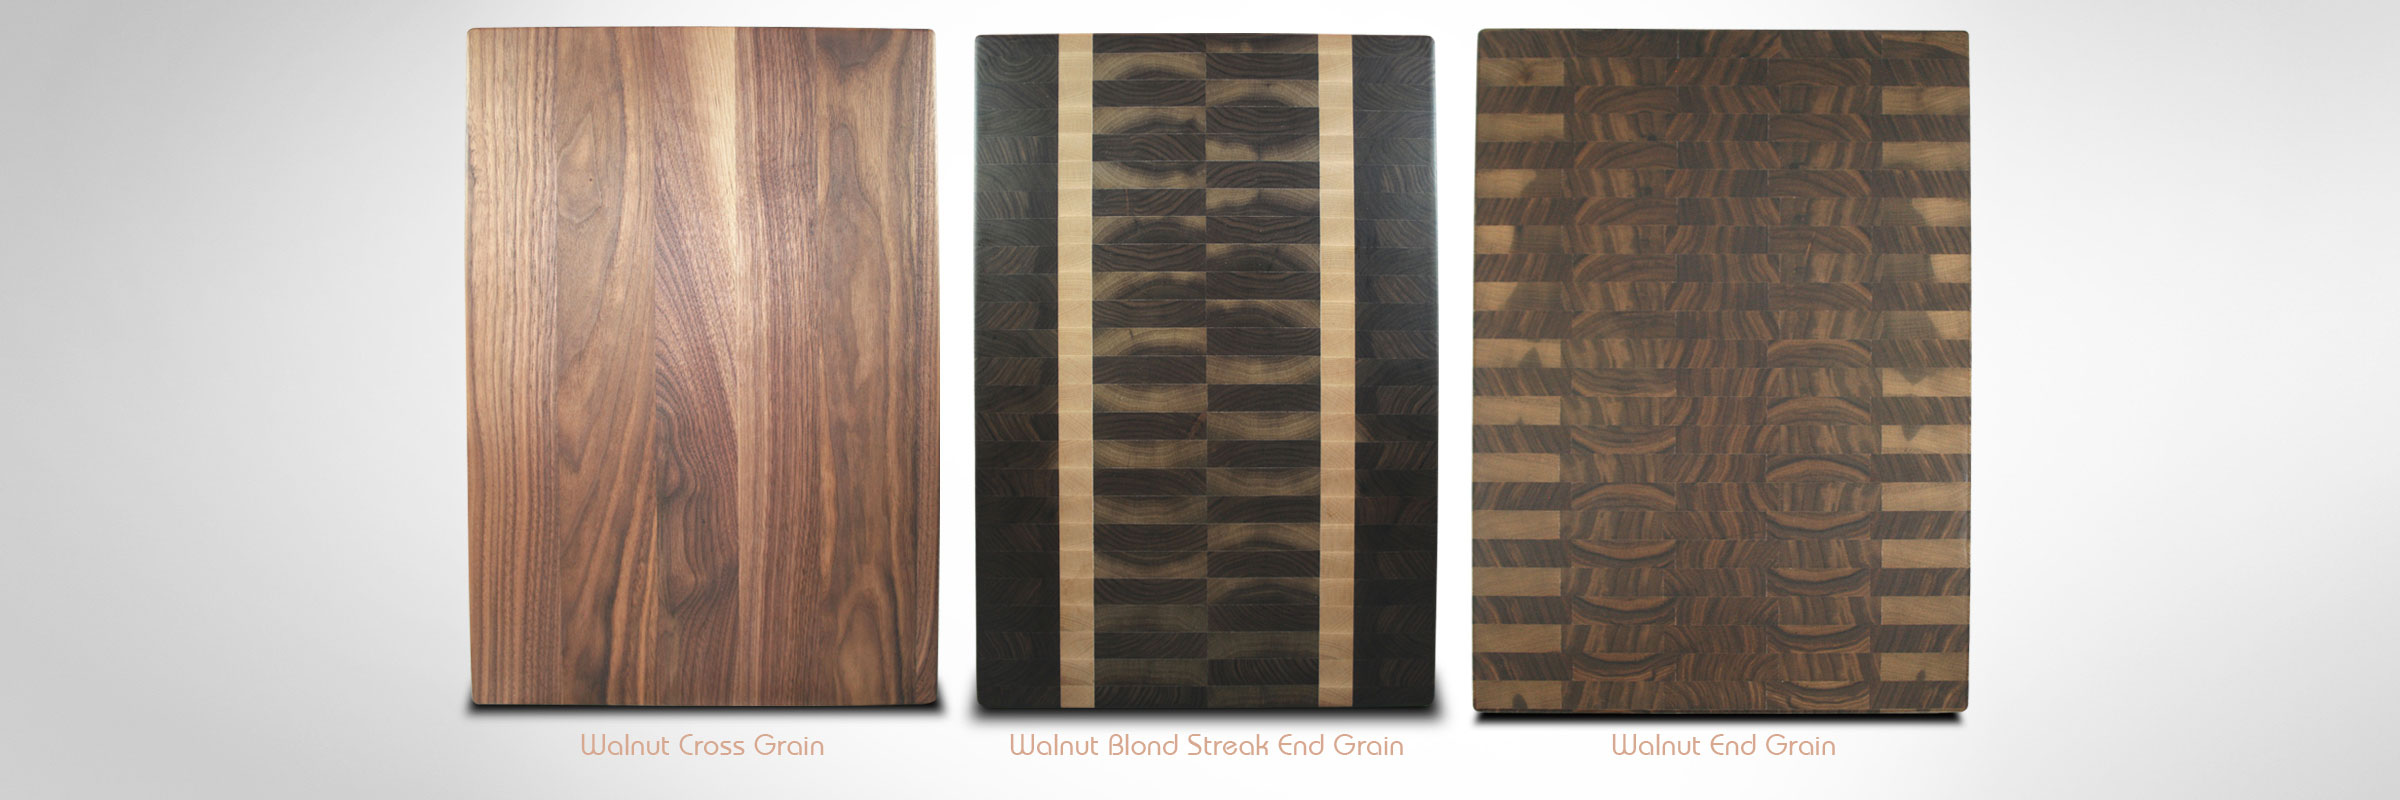 Walnut Cross Grain | Walnut Blond Streak End Grain | Walnut End Grain Chopping Blocks